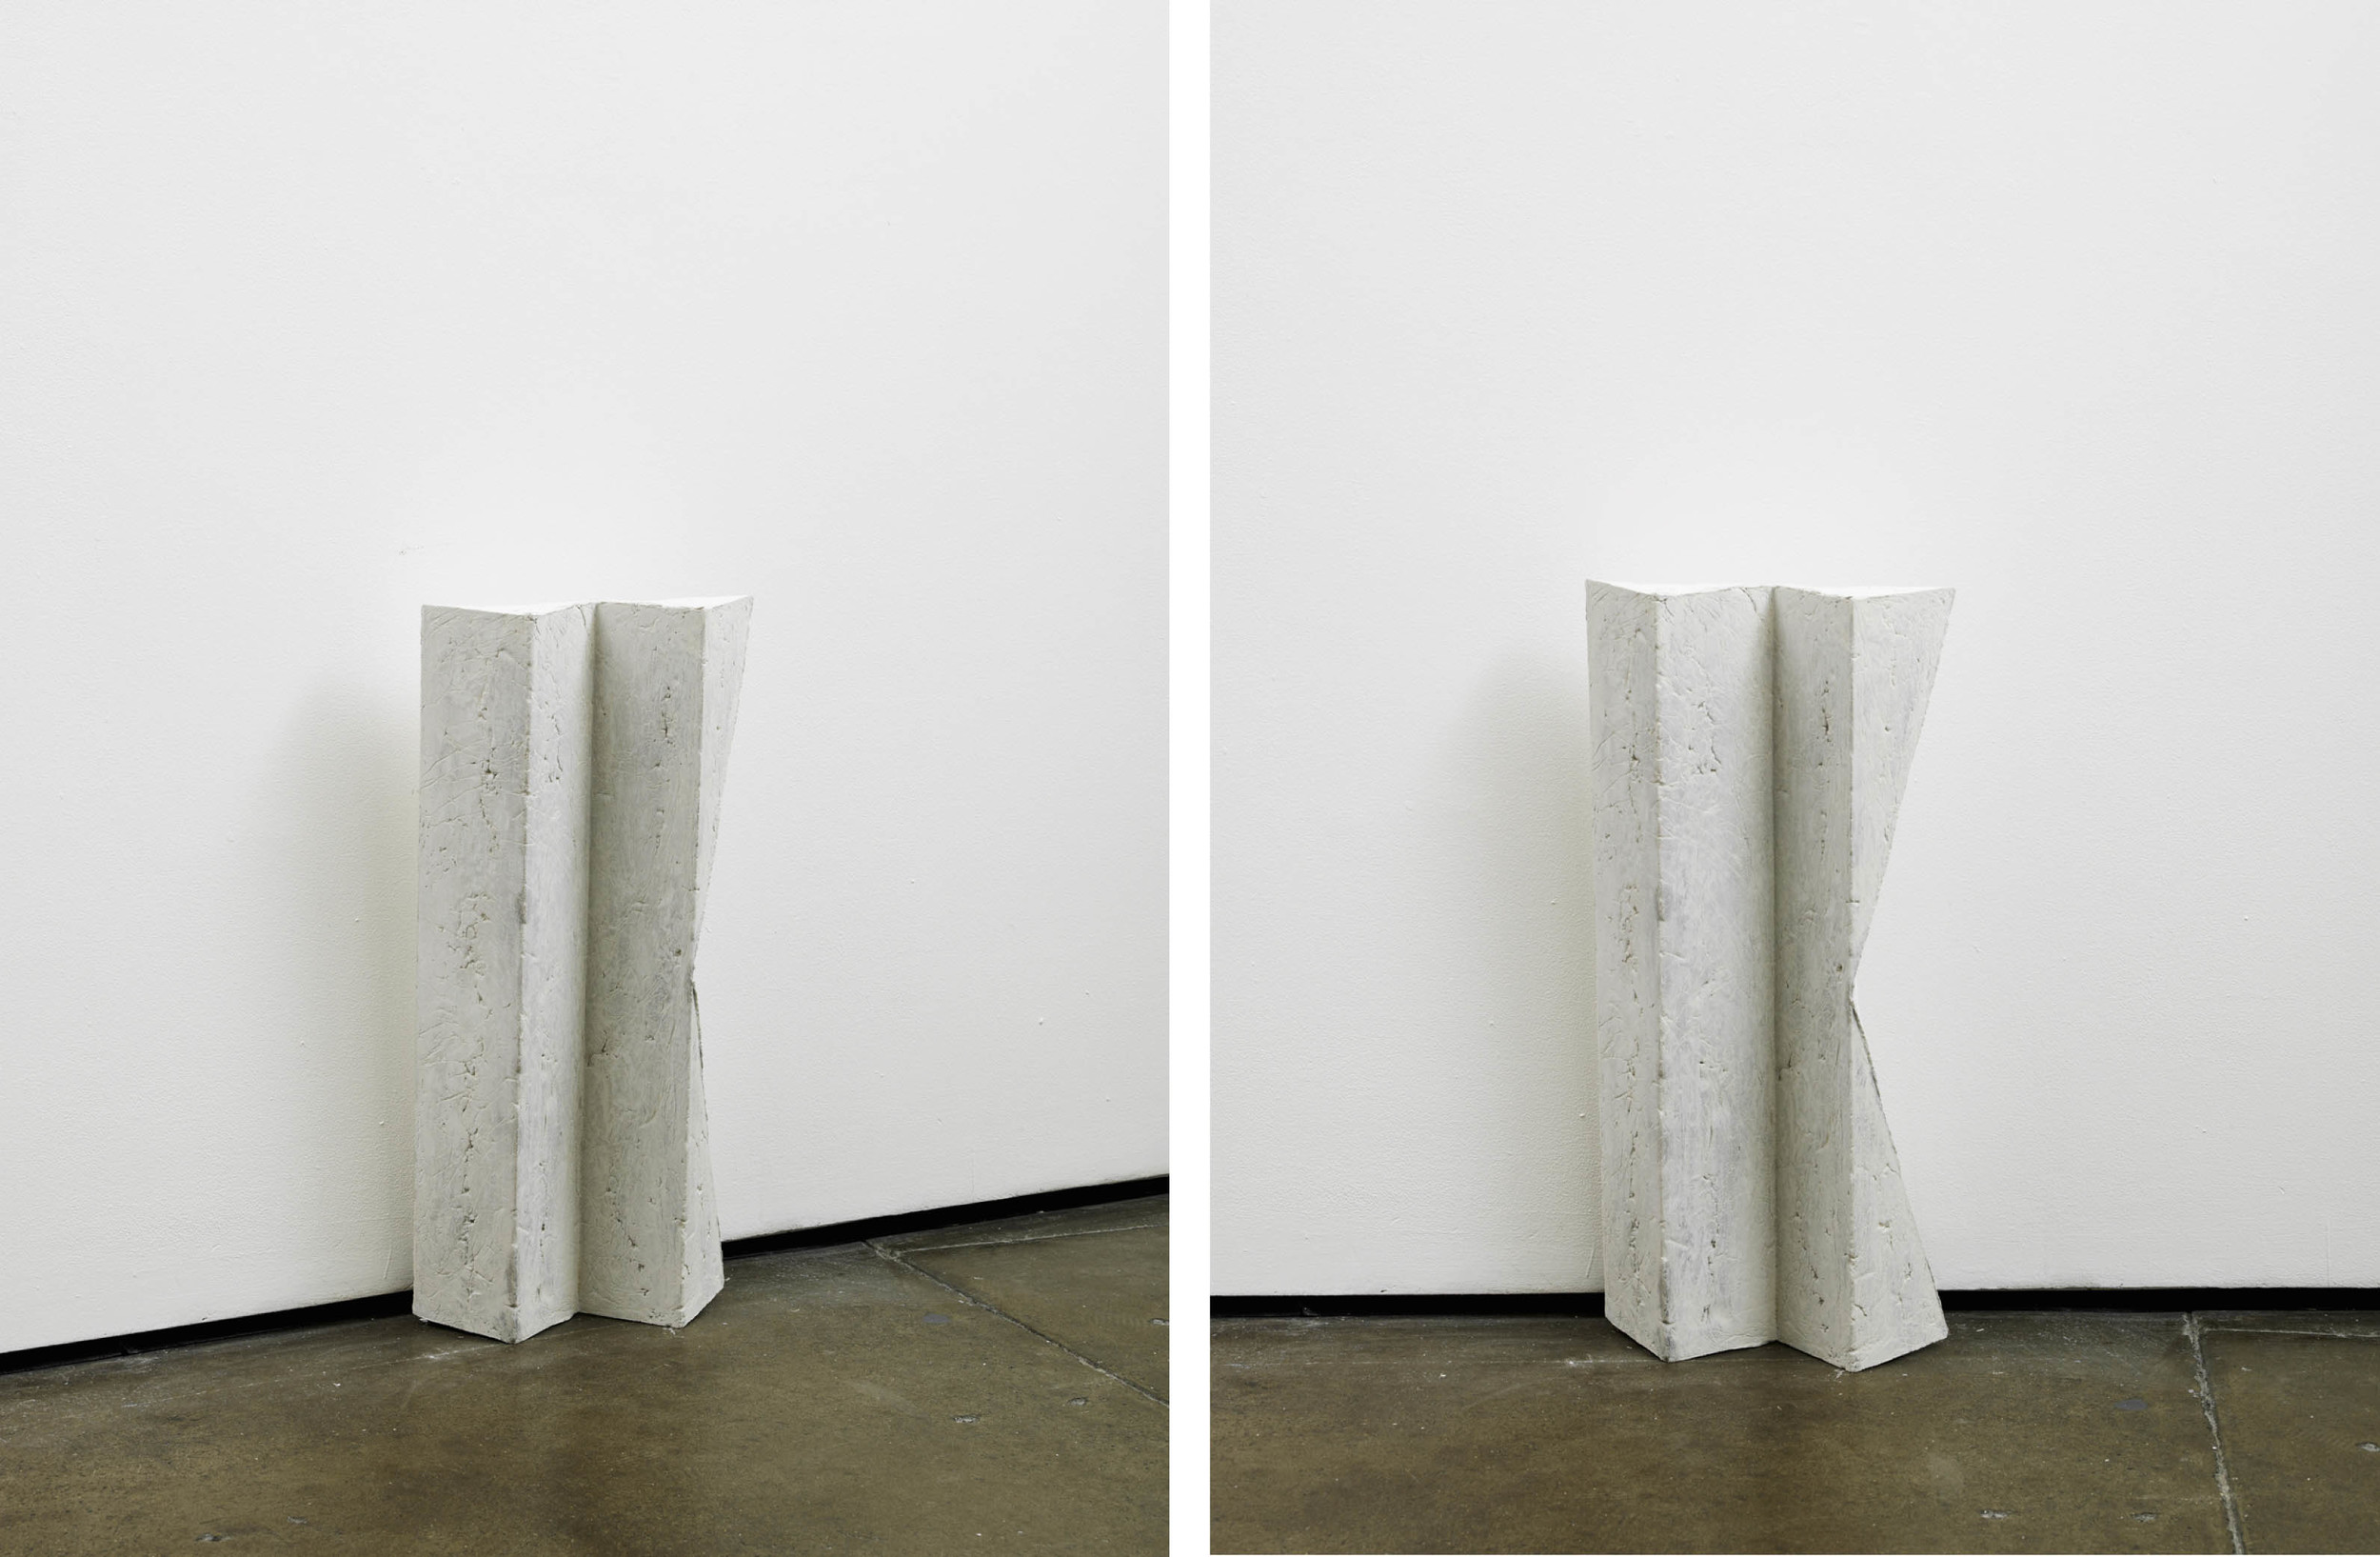 look (working title)  2012  Concrete  60 x 30 x 10 cm / 23.6 x 11.8 x 3.9 in